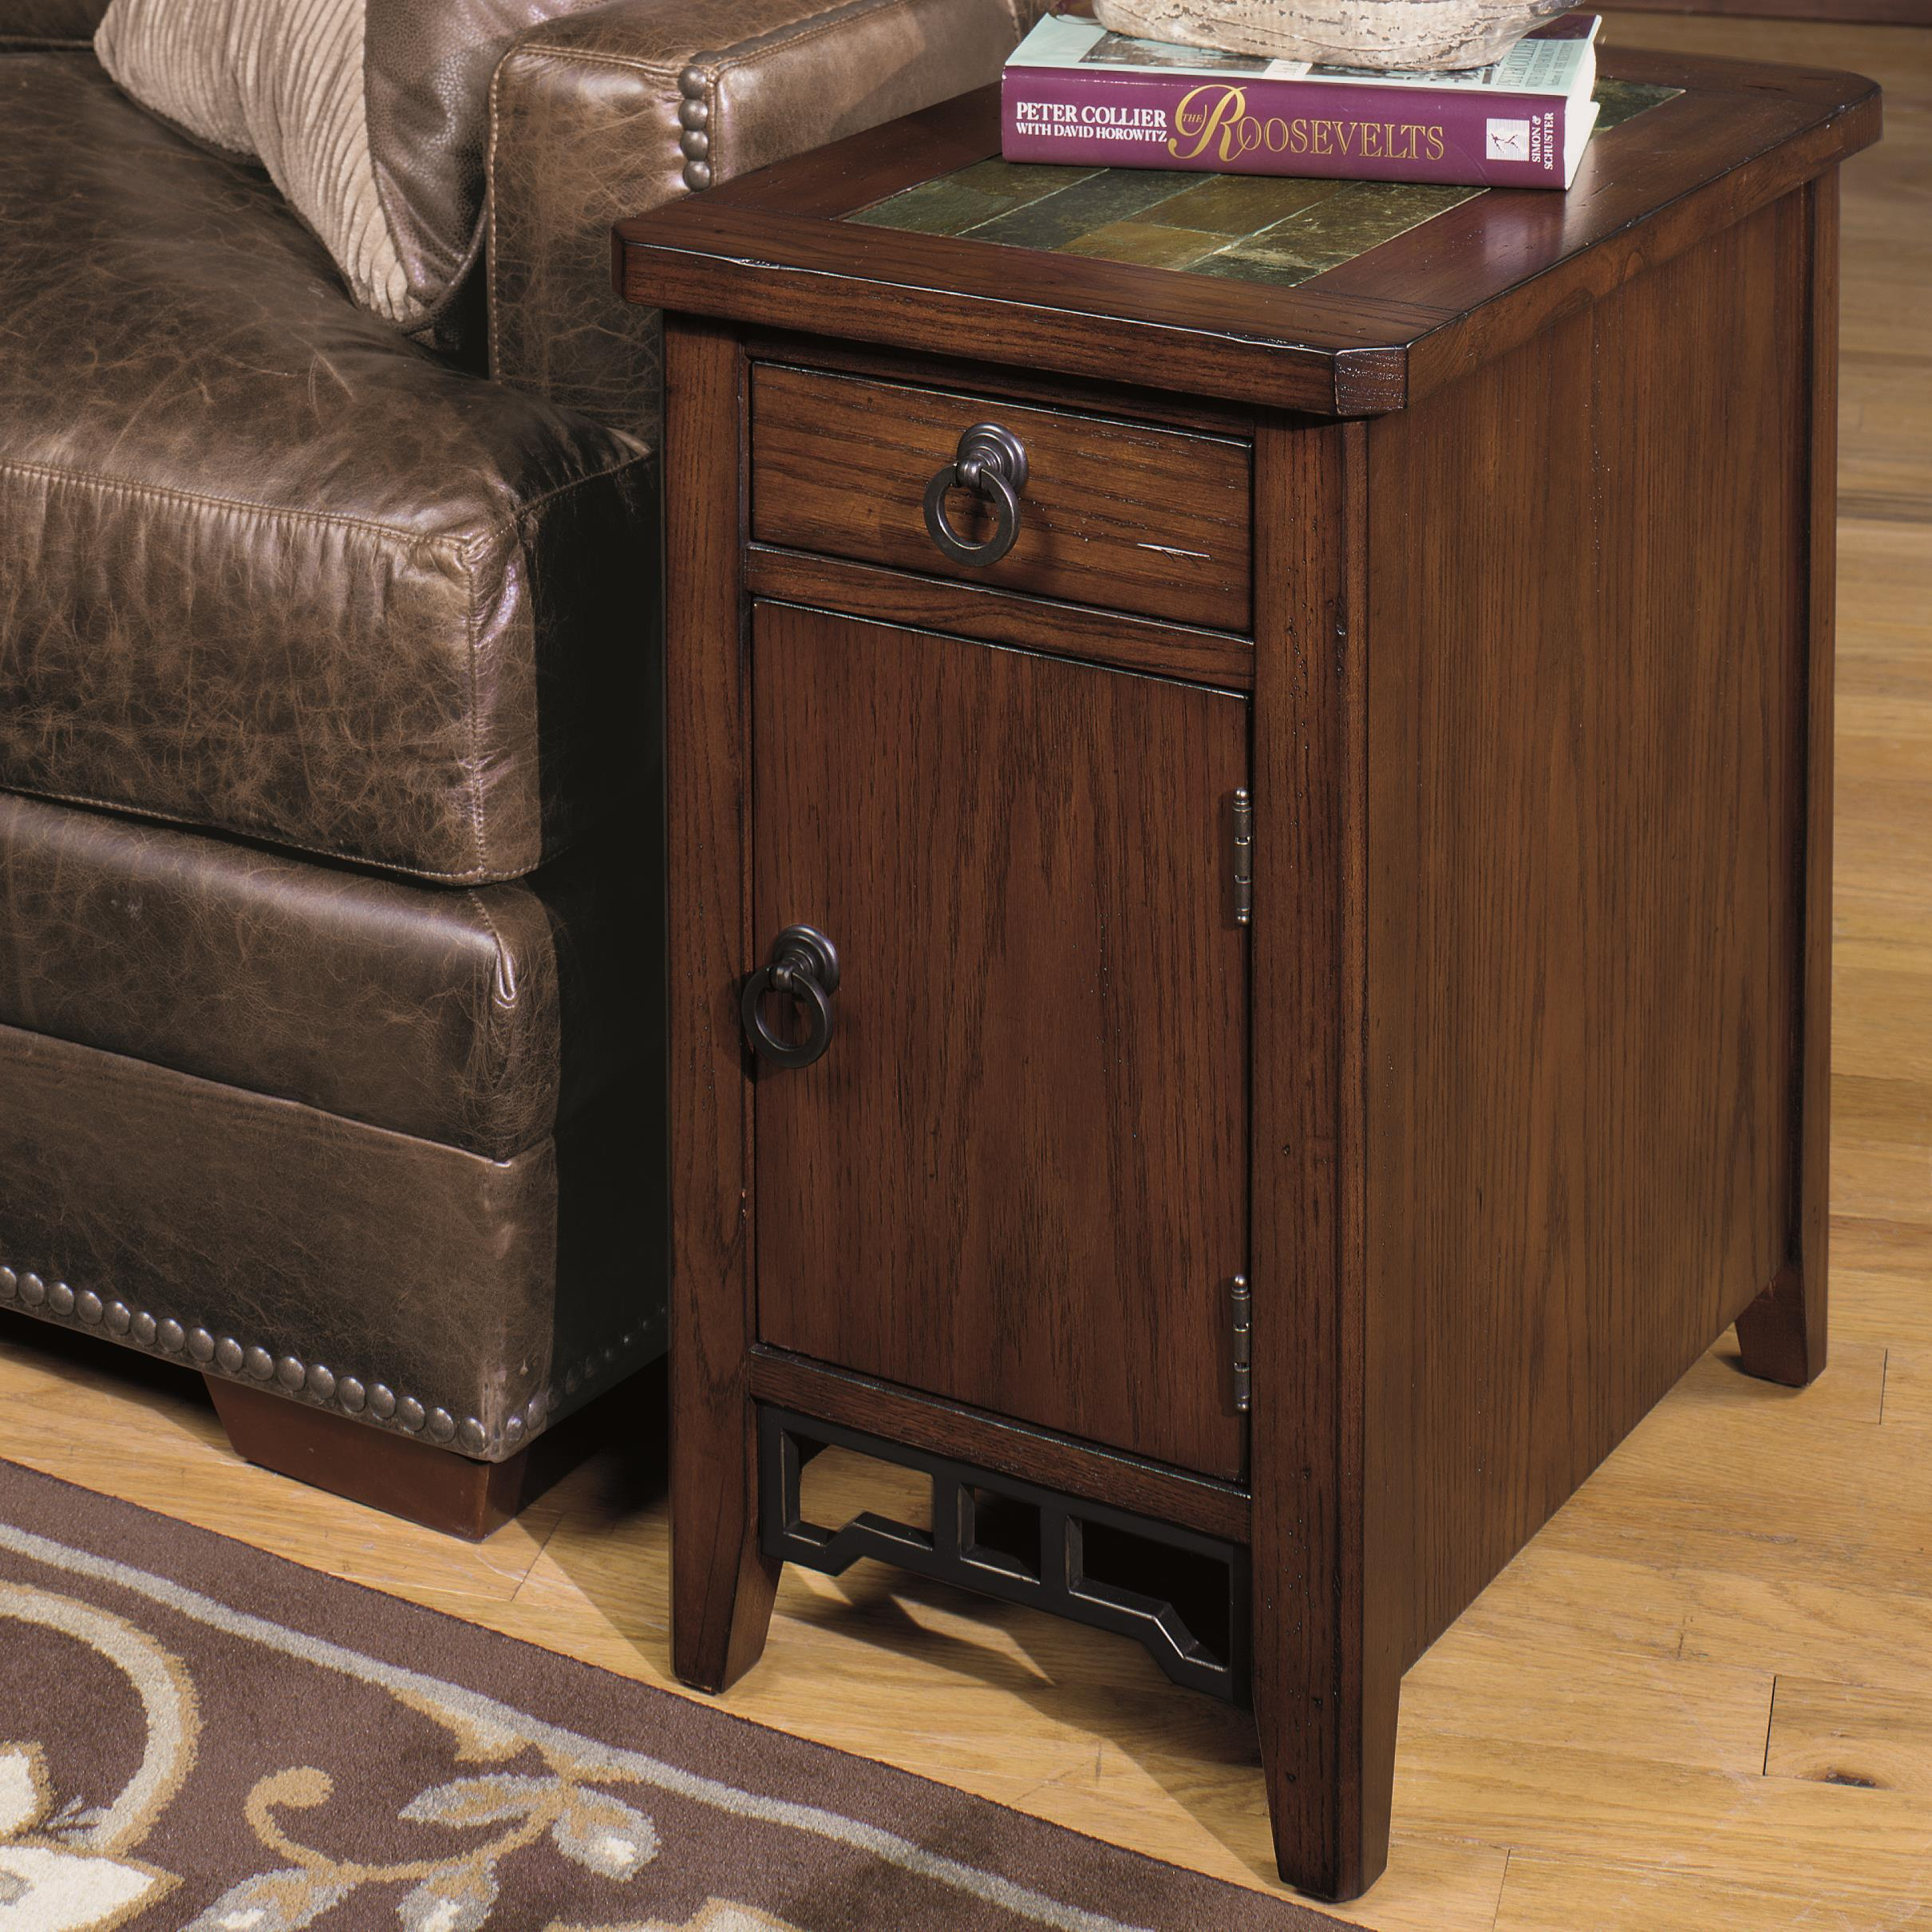 5013 Chairside Cabinet by Null Furniture at Esprit Decor Home Furnishings